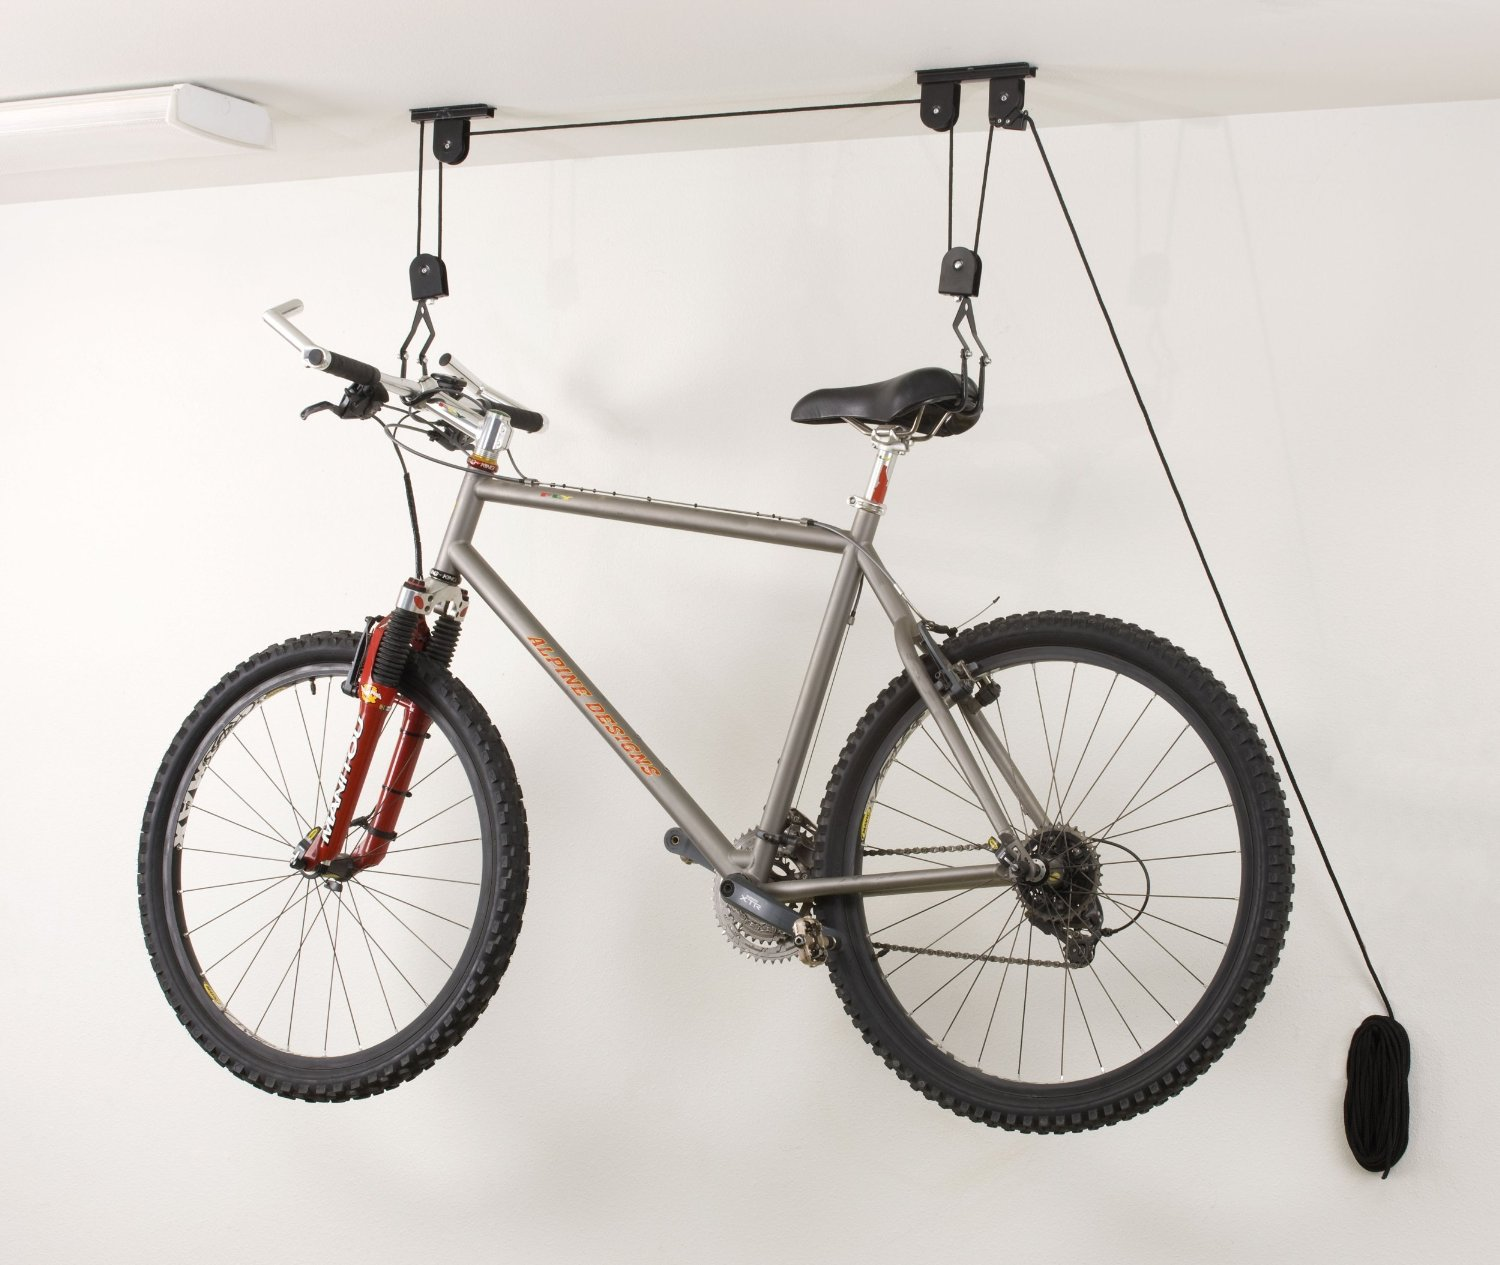 Ceiling Bike Storage Lift Hang Cycle Bicycle Garage Shed Make Your Own Beautiful  HD Wallpapers, Images Over 1000+ [ralydesign.ml]